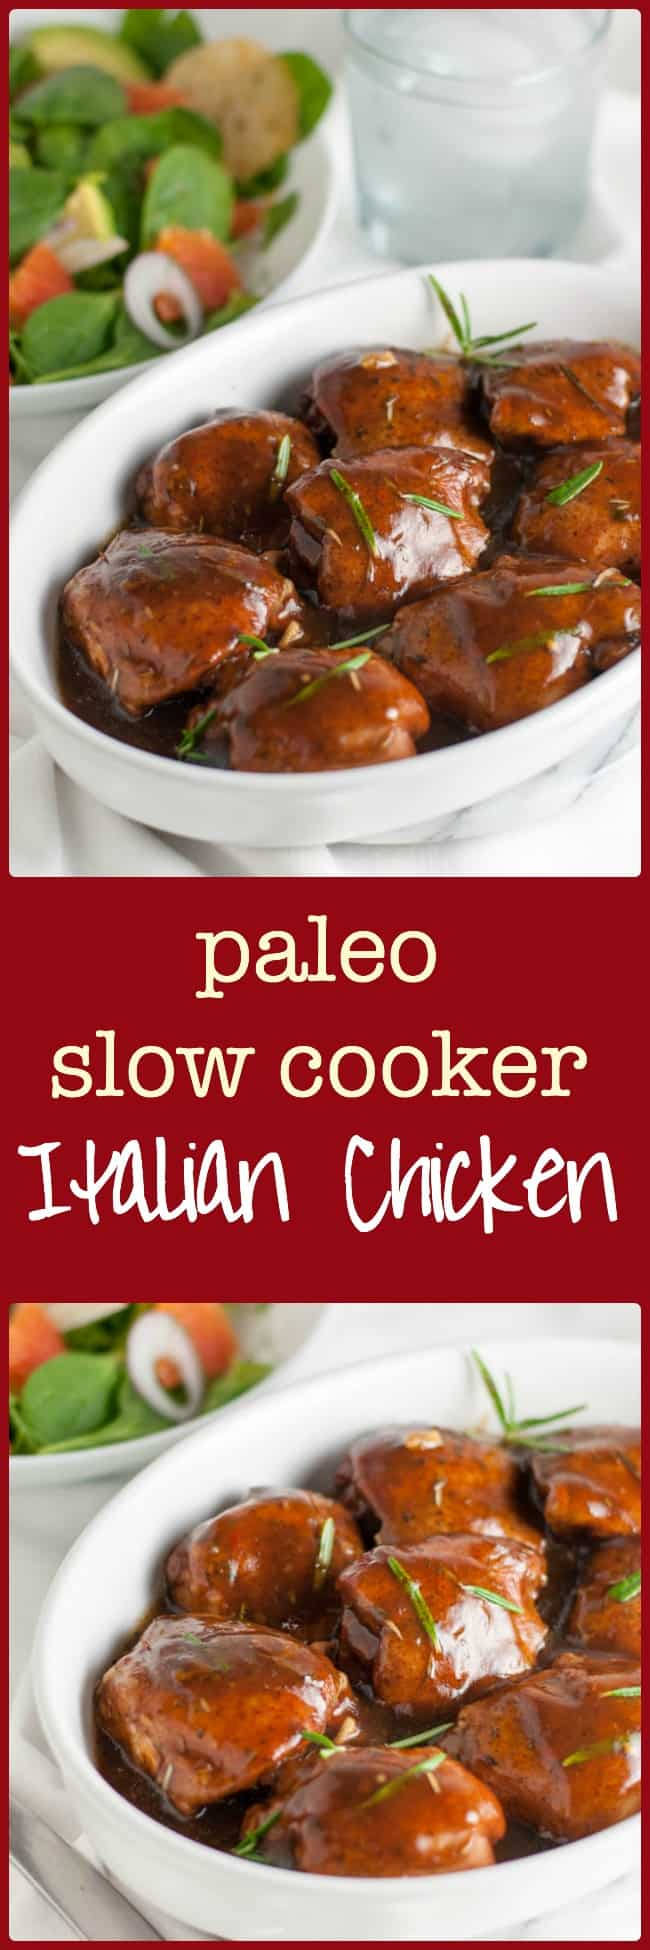 Easy Paleo Italian Chicken with Balsamic and Herbs. One-step recipe that you can make in your slow cooker.